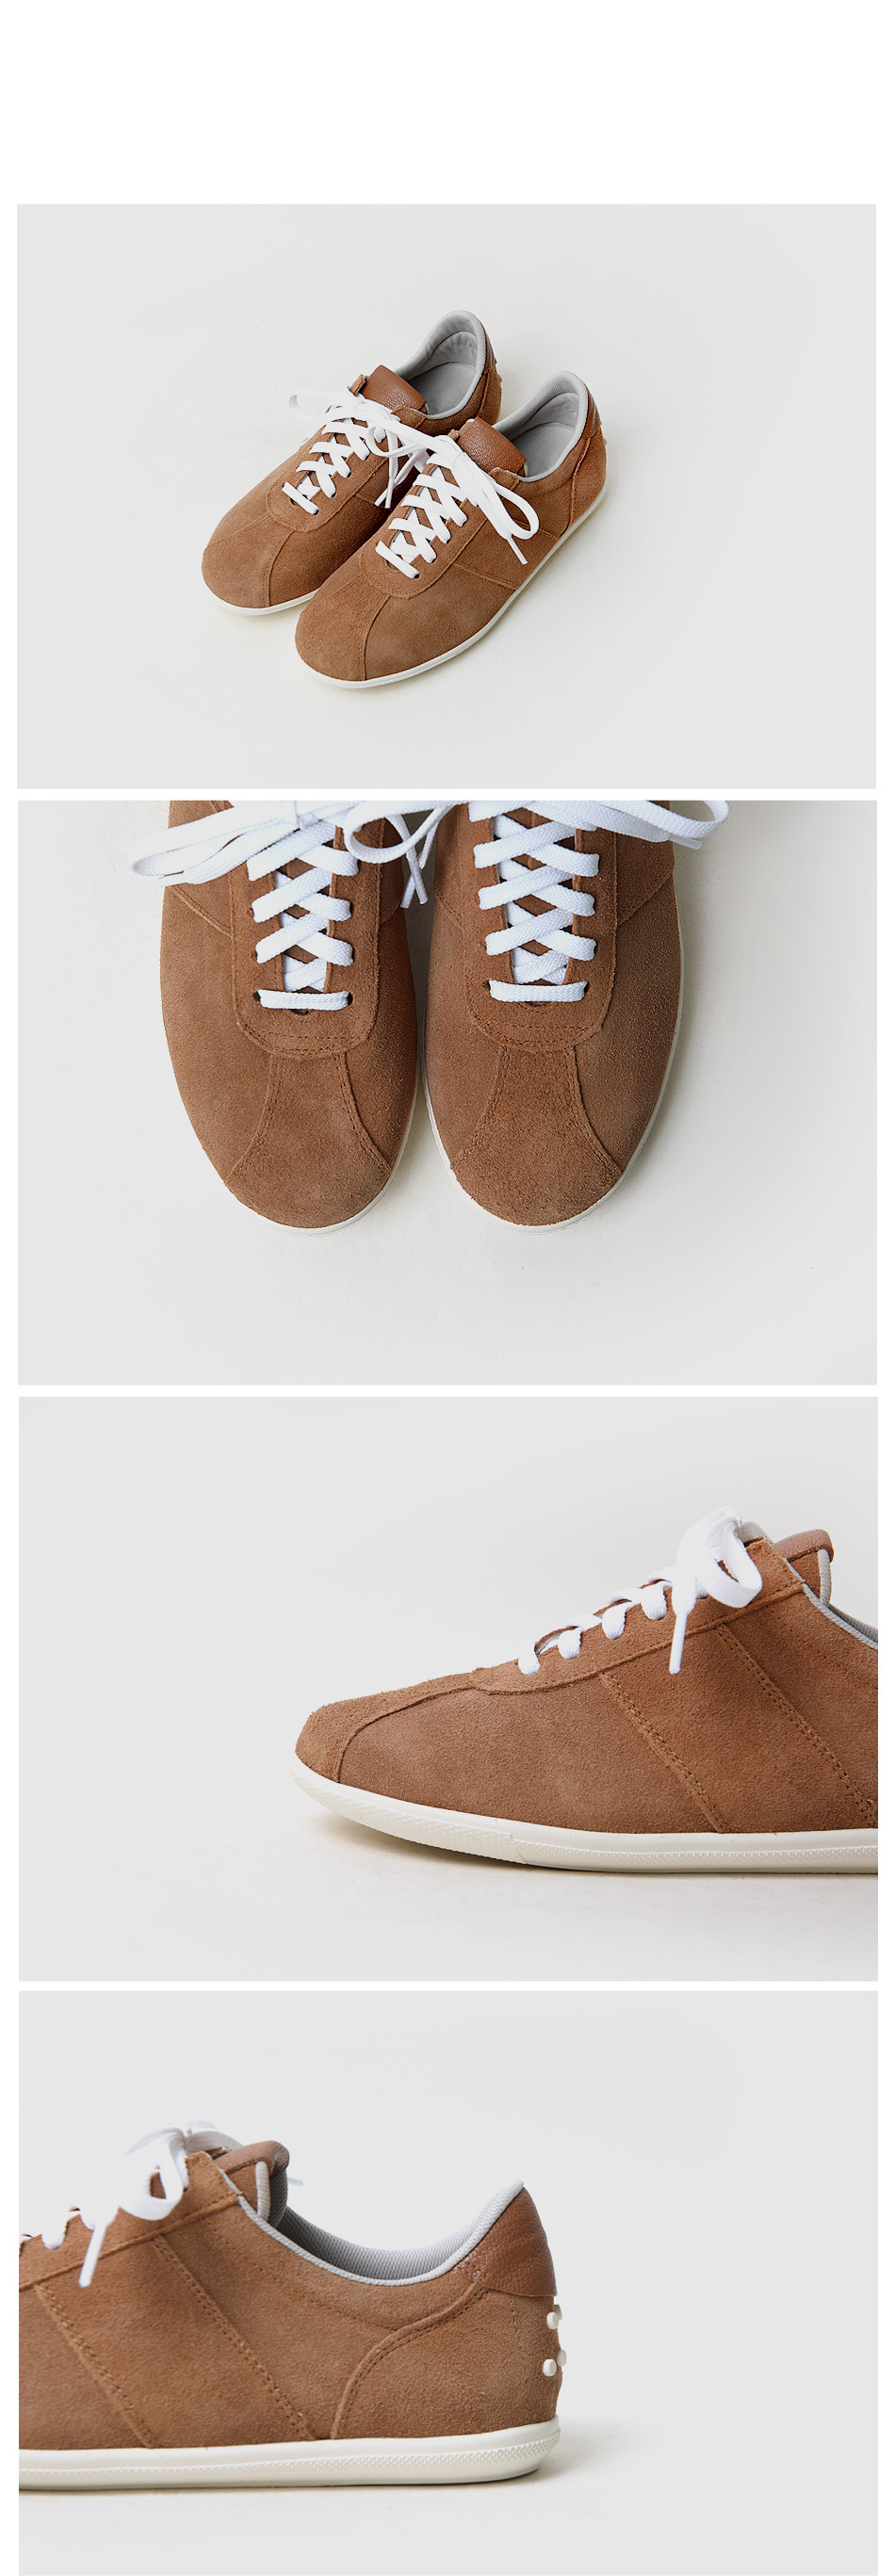 Epilen leather high-height sneakers 3cm